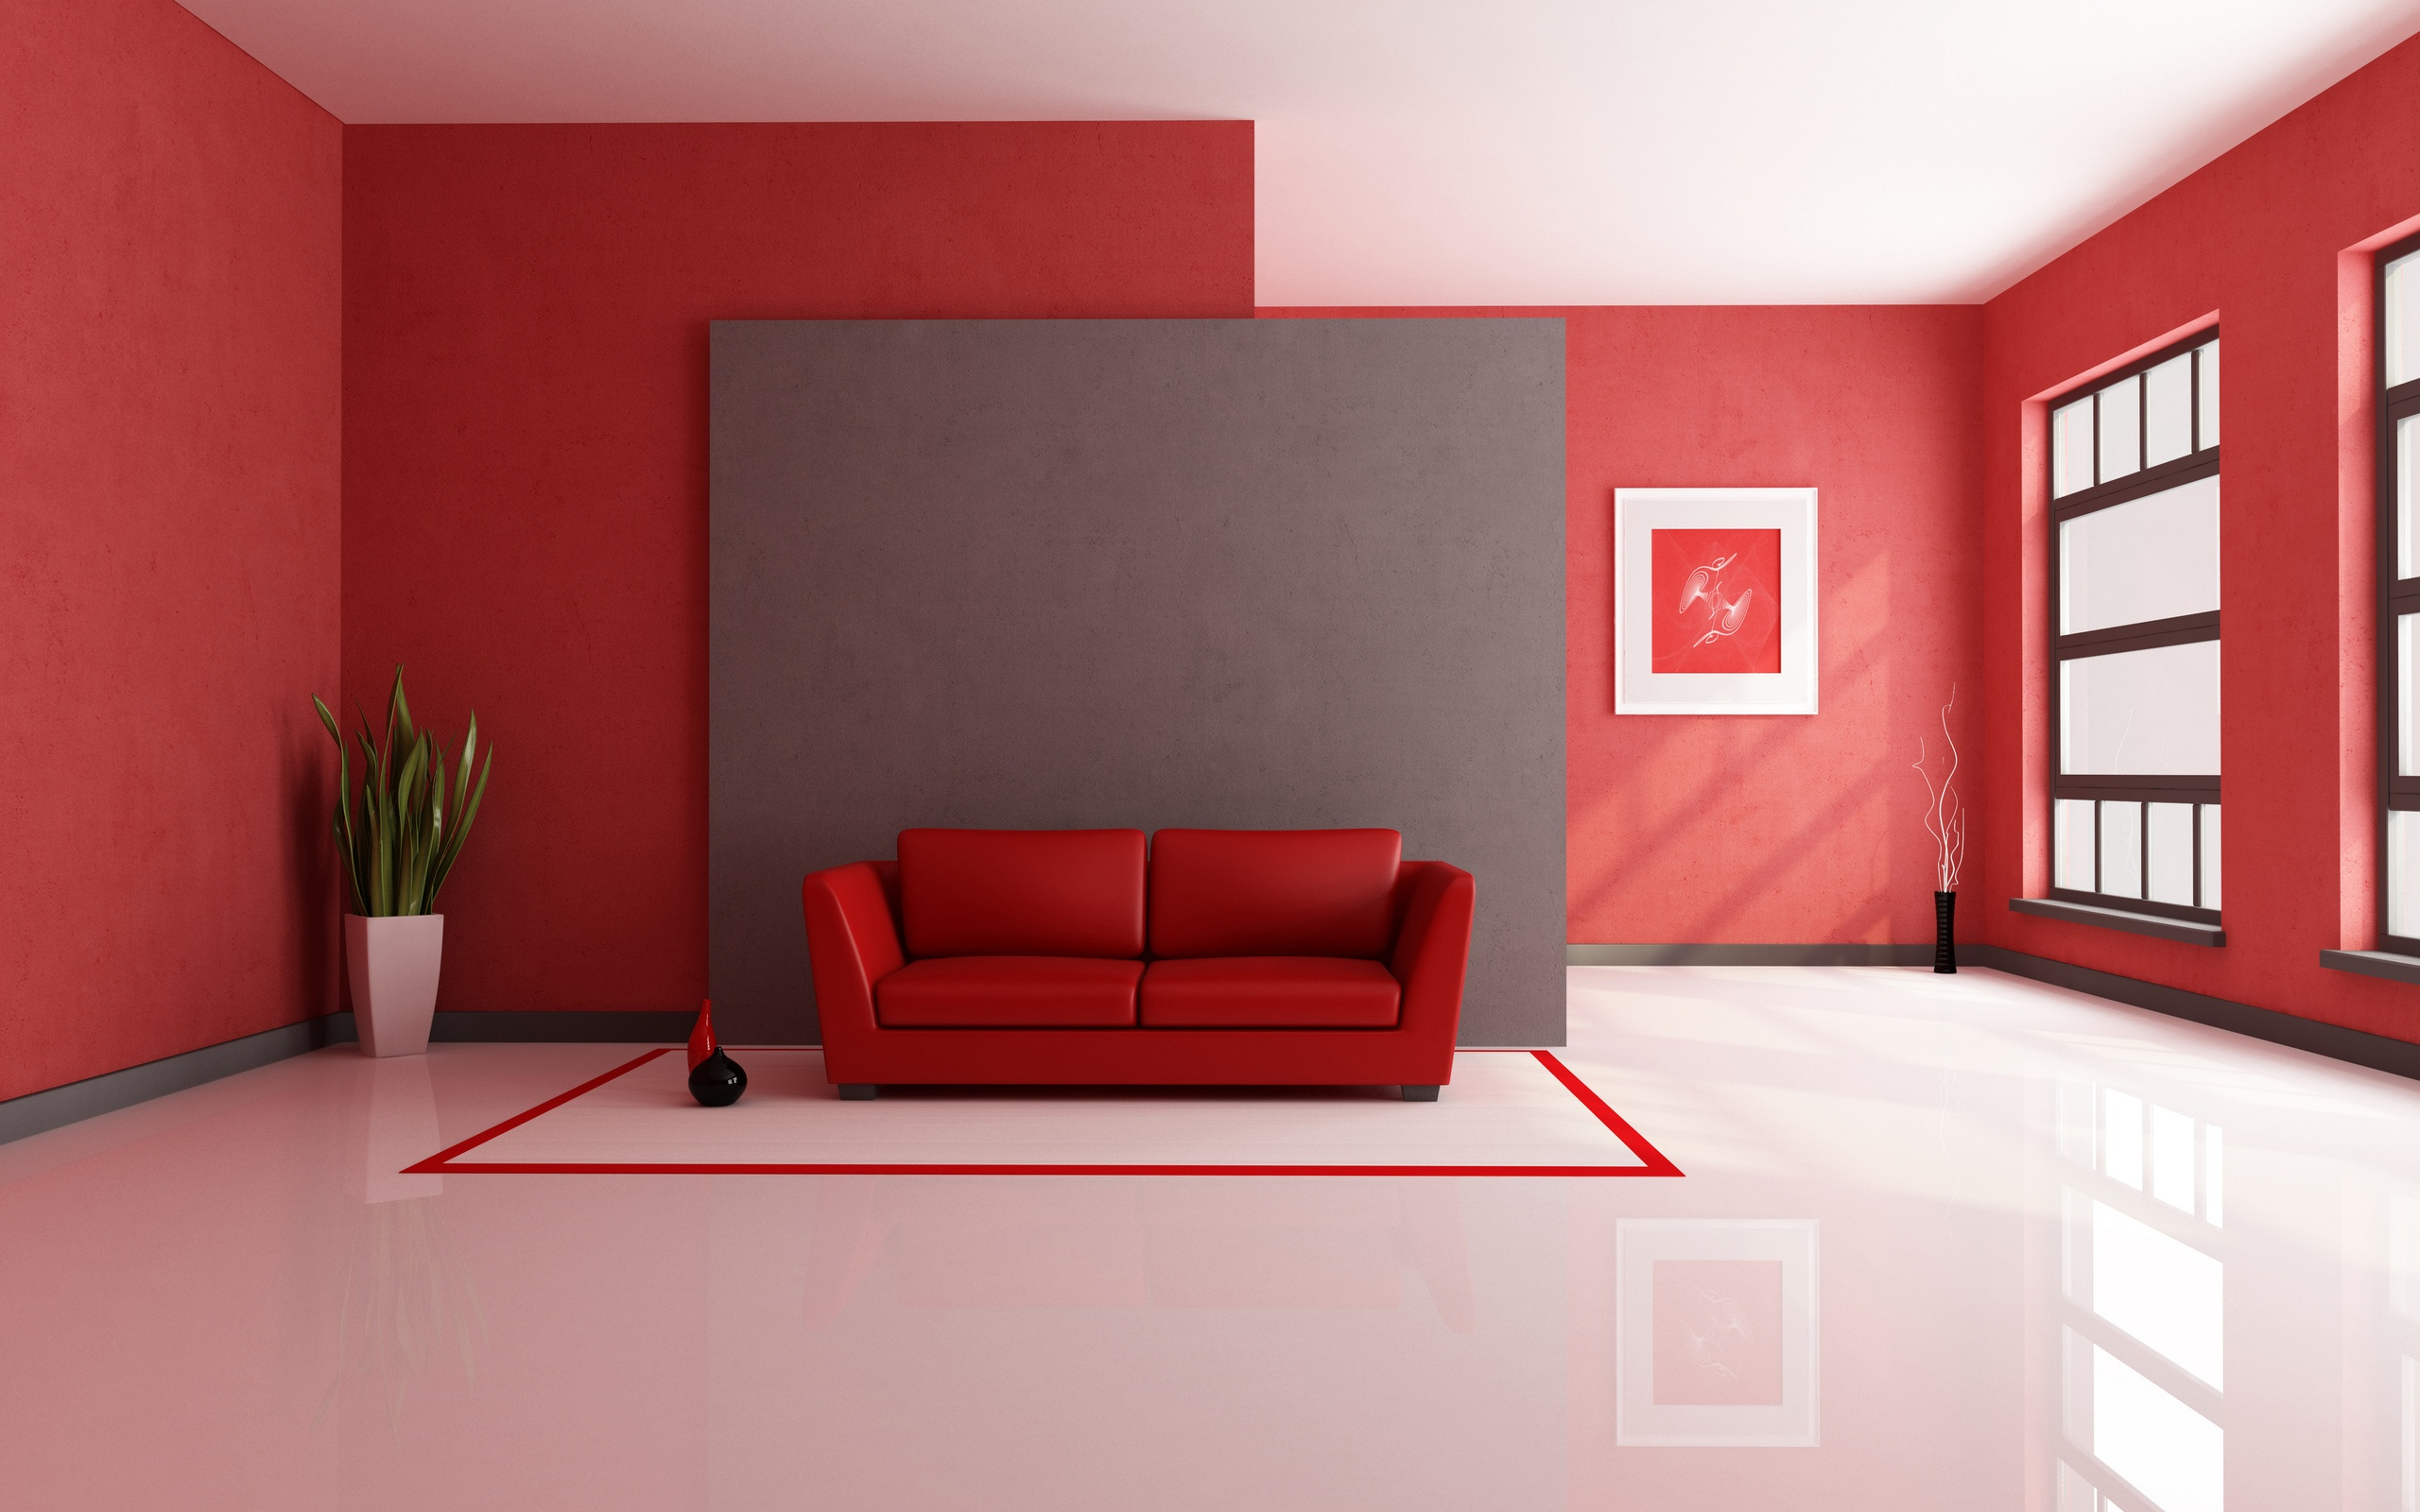 arcsens-red-interior-design